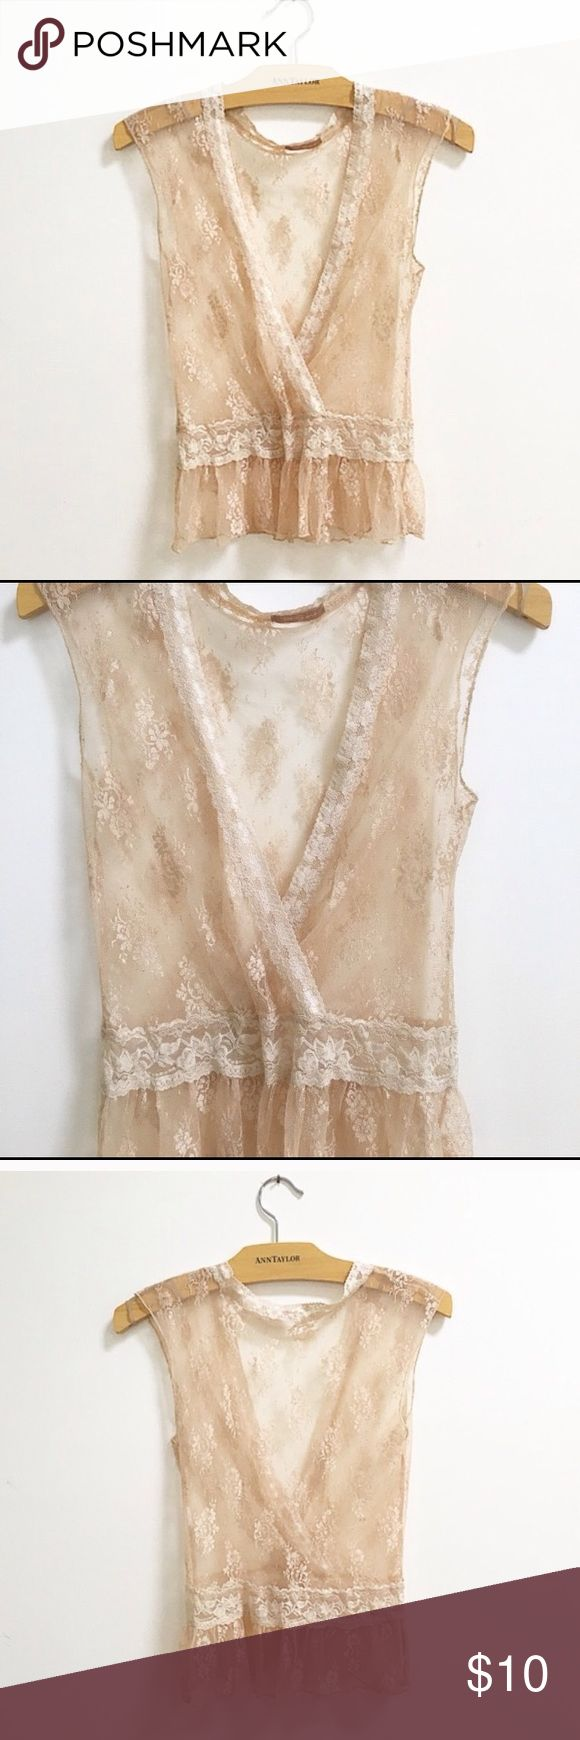 Forever 21 short sleeve lace top-S Forever 21 beautiful and feminine cream lace short sleeve top. This top would look good with a cardigan or jean jacket. Cute top for date night. Wear a nude bra and show a little skin or wear with a cami underneath. It would fit an XS or a small (true to size) that's not too busty. Unfortunately it didn't work for me. This is a reposh. In excellent condition-like new. Forever 21 Tops